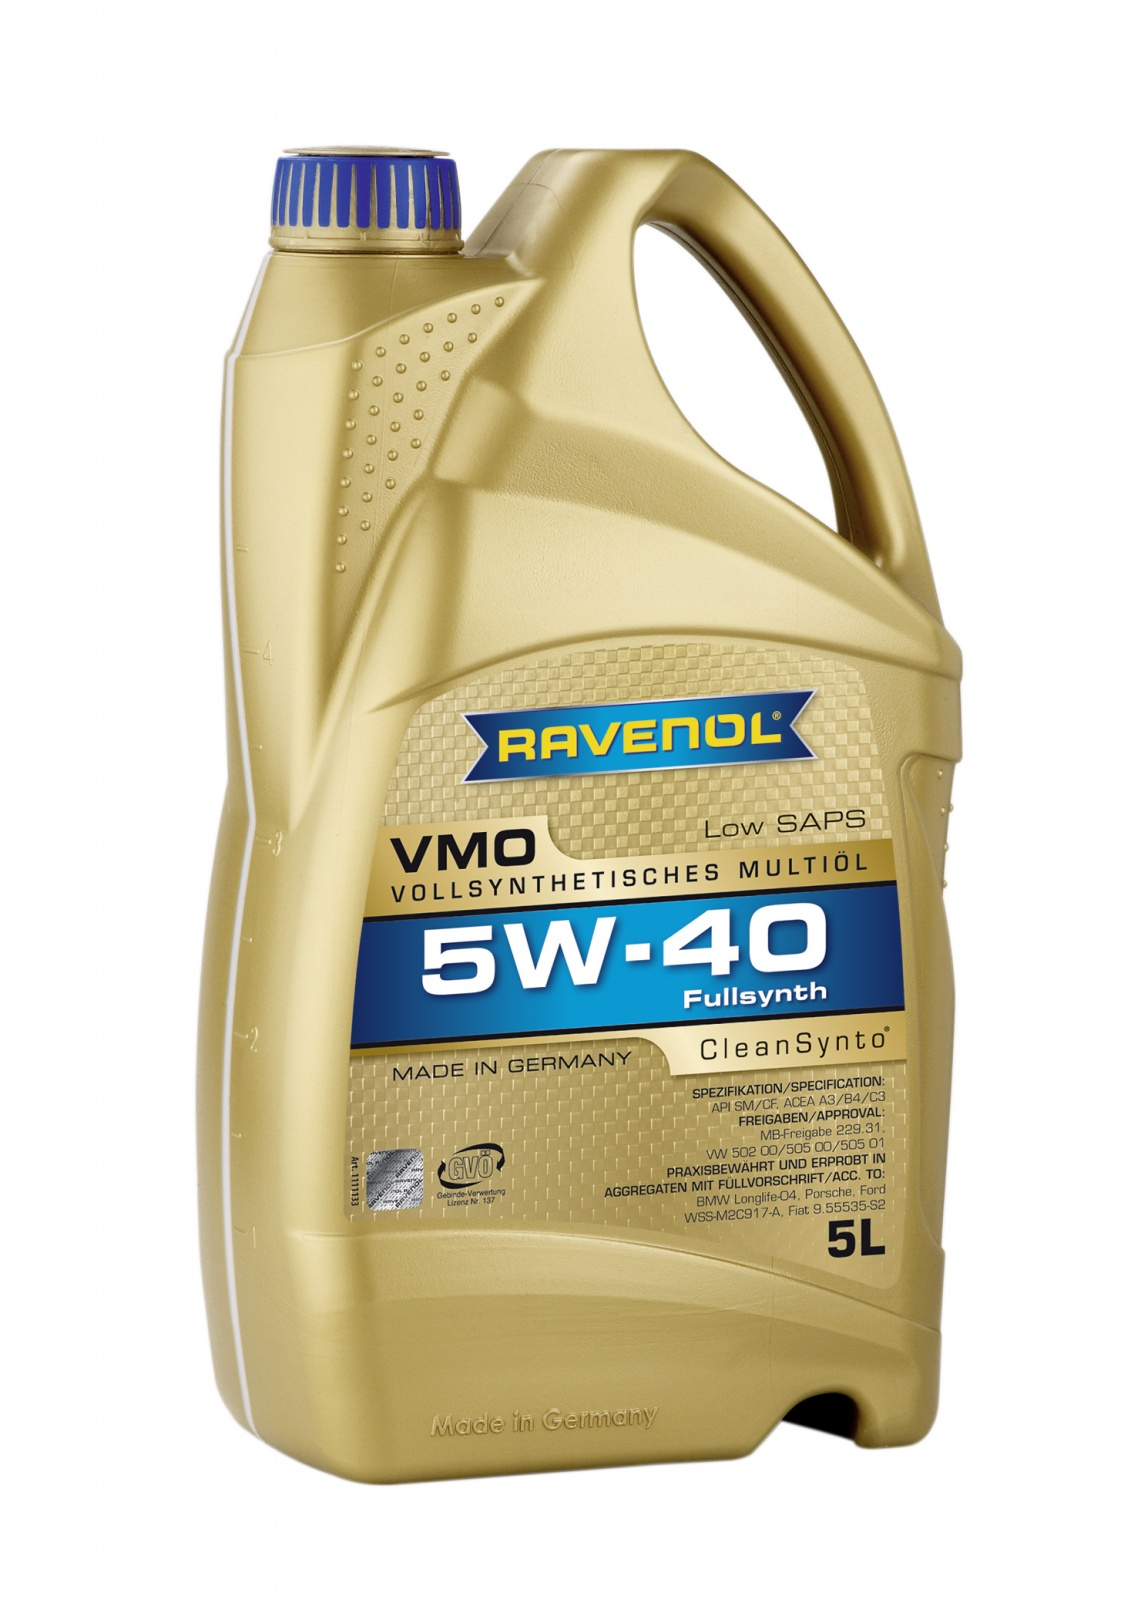 5 W 40 Ravenol Uk Ravenol Vmo 5w 40 Engine Oil